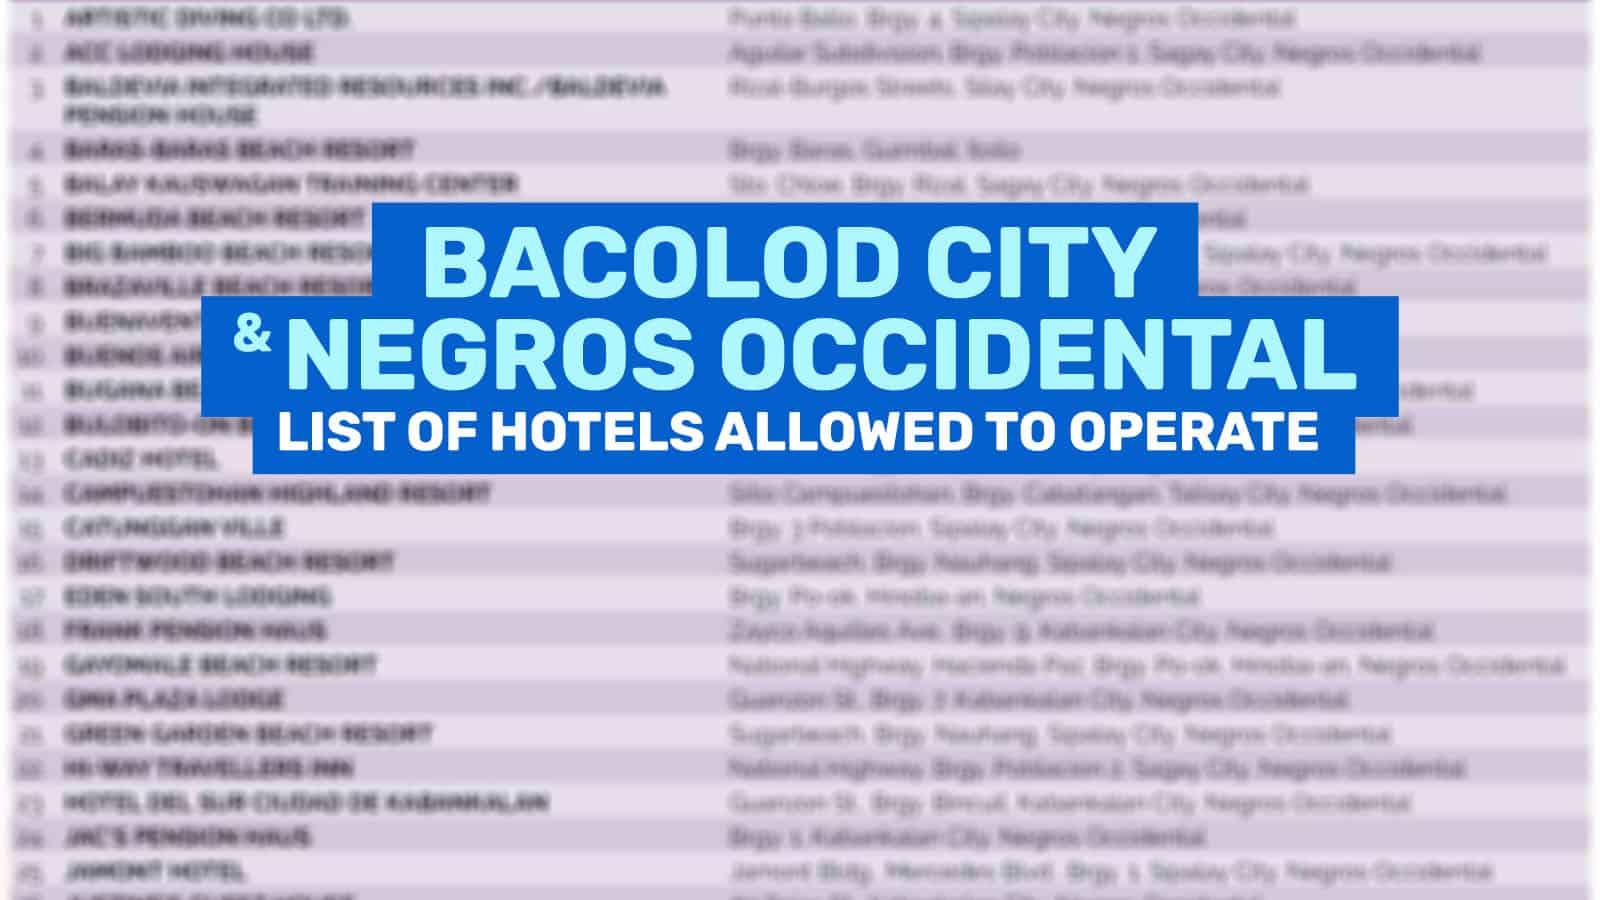 BACOLOD & NEGROS OCCIDENTAL: List of Hotels & Resorts Allowed to Operate